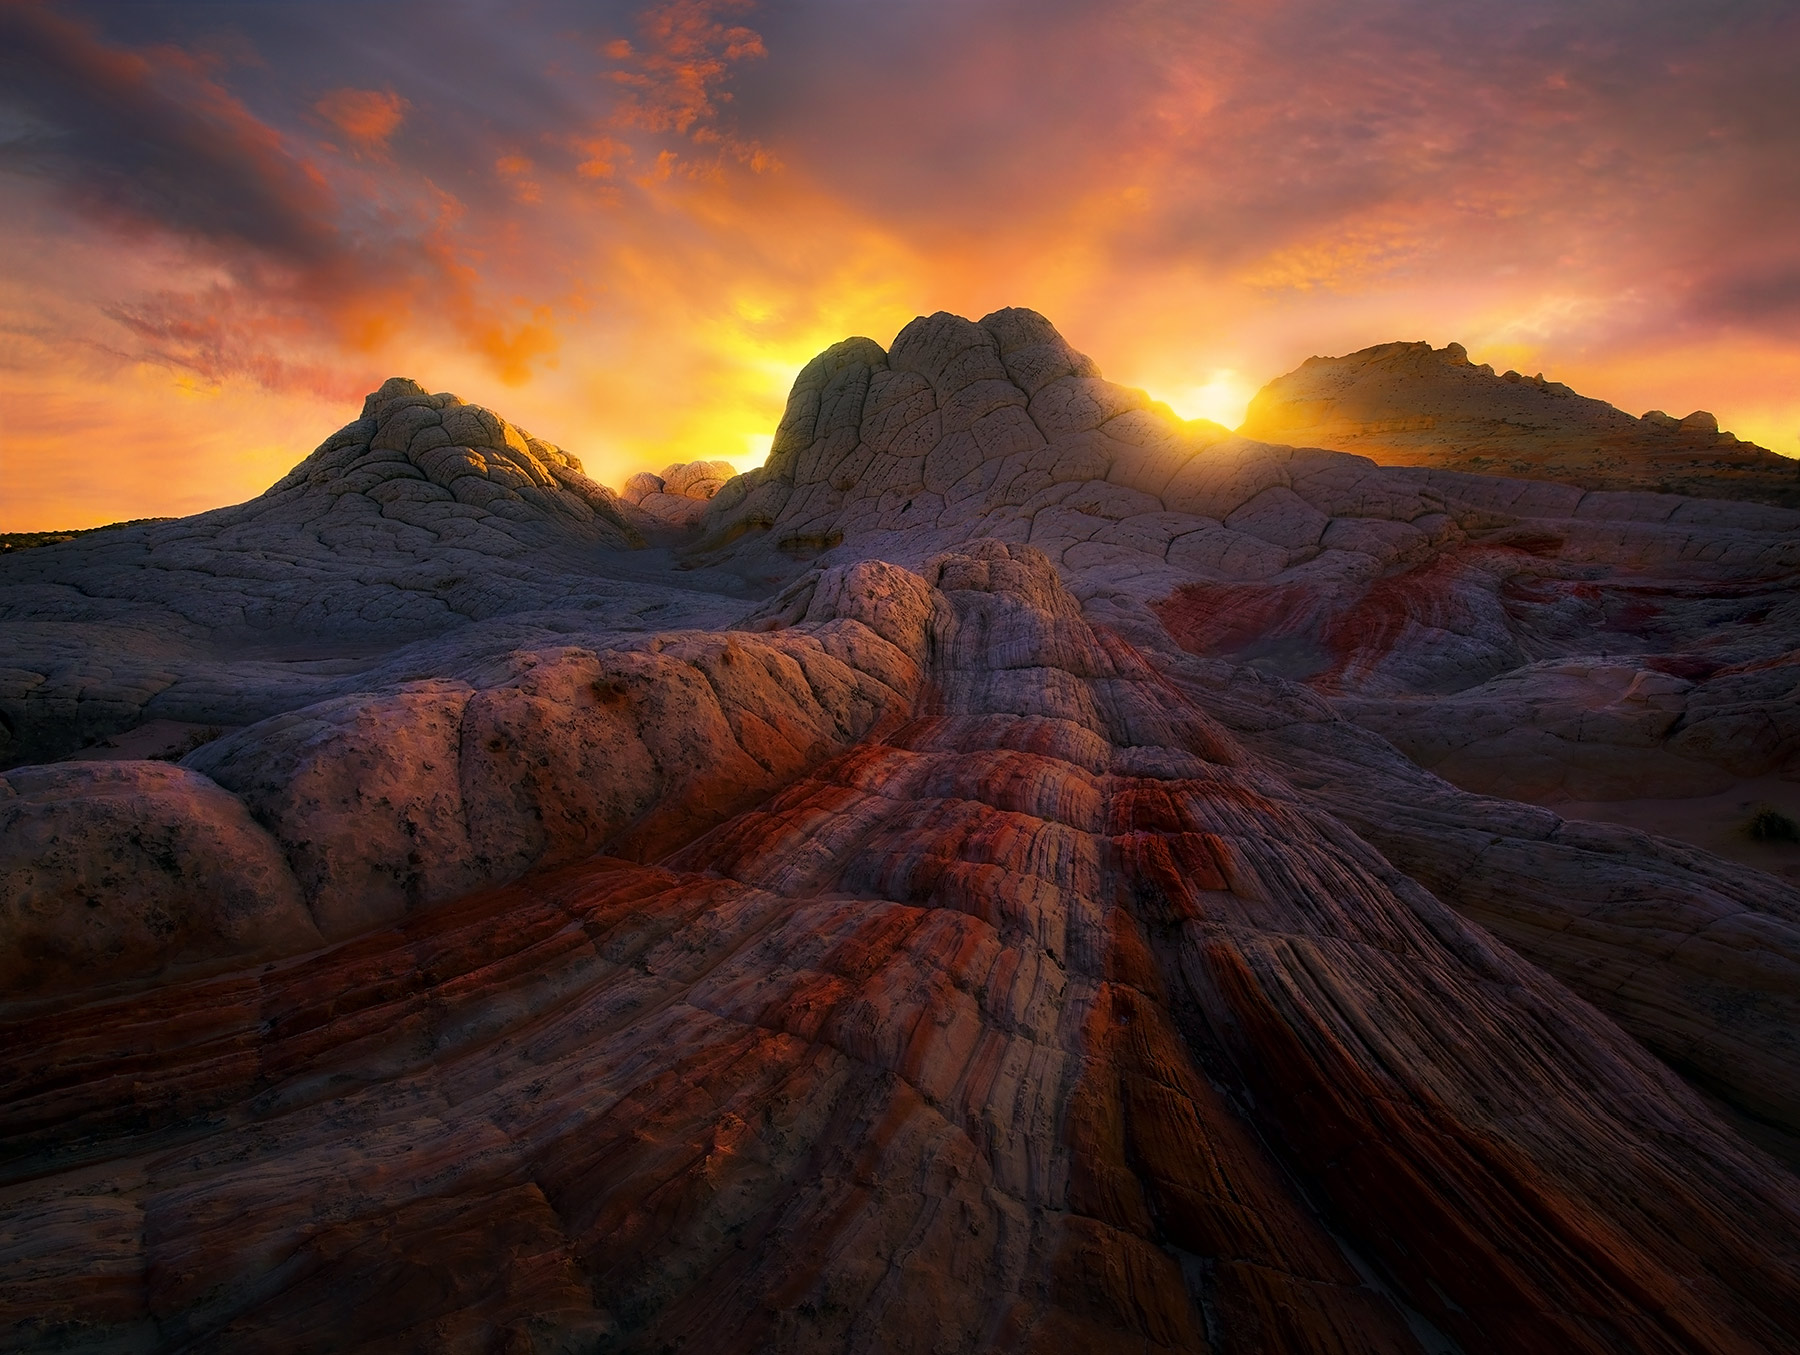 The otherworldly sandstone formations of Arizona's Colorado Plateau region on display in this dramatic sunset light.